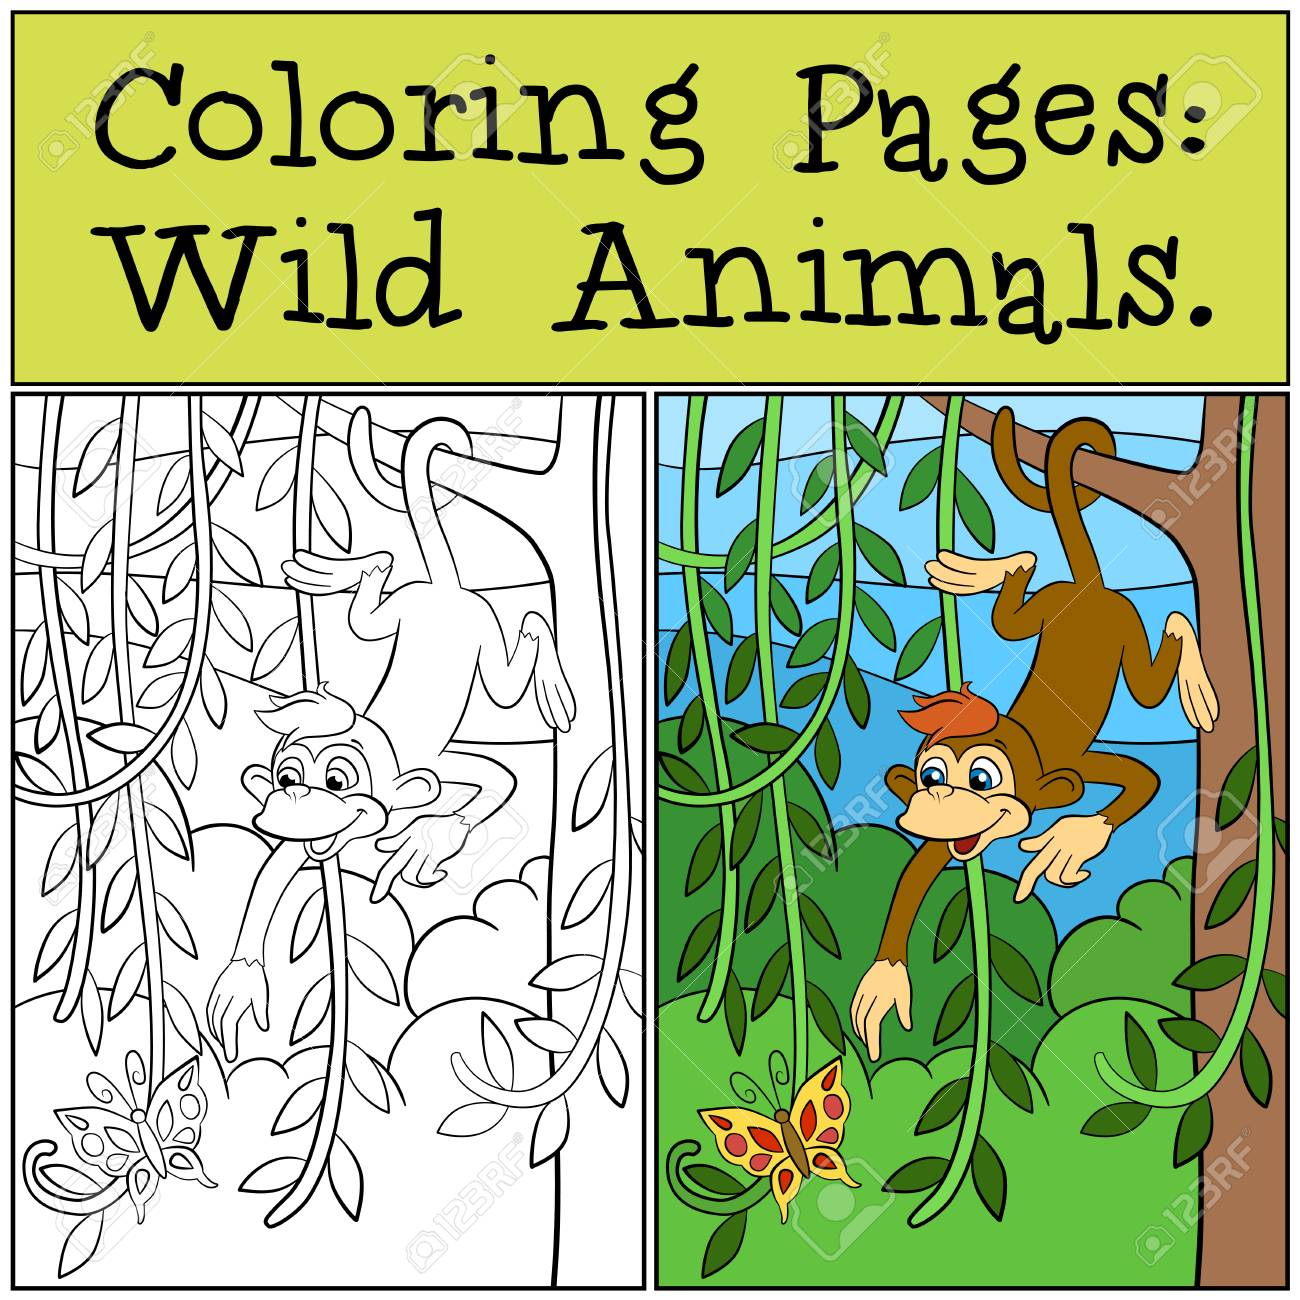 Coloring Pages Wild Animals Little Cute Monkey Looks At The Butterfly Stock Vector